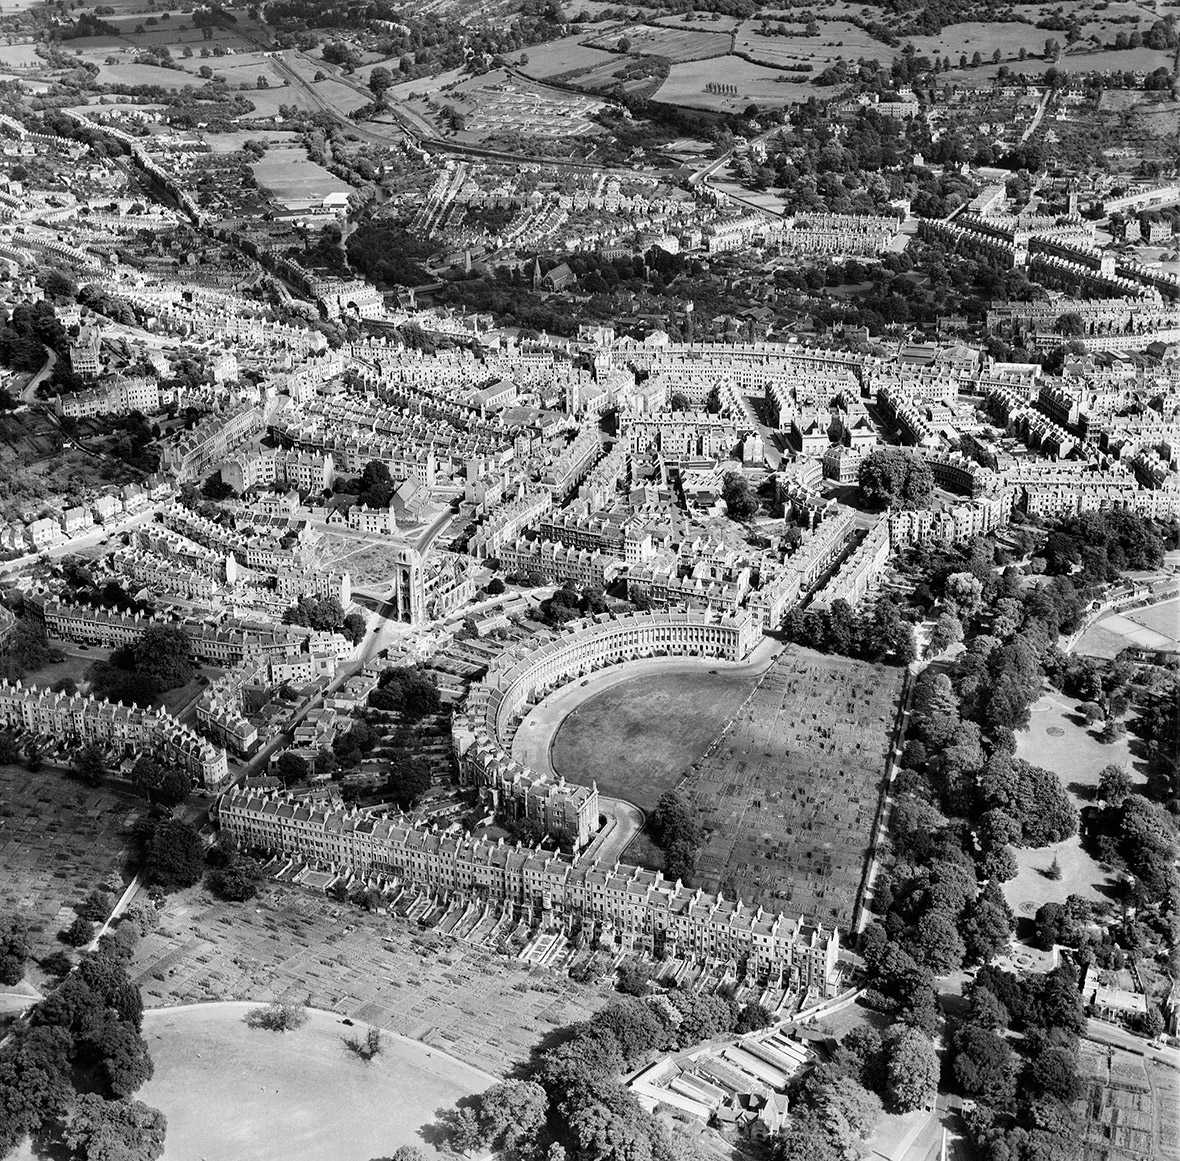 The Royal Crescent and environs, Bath, 1949